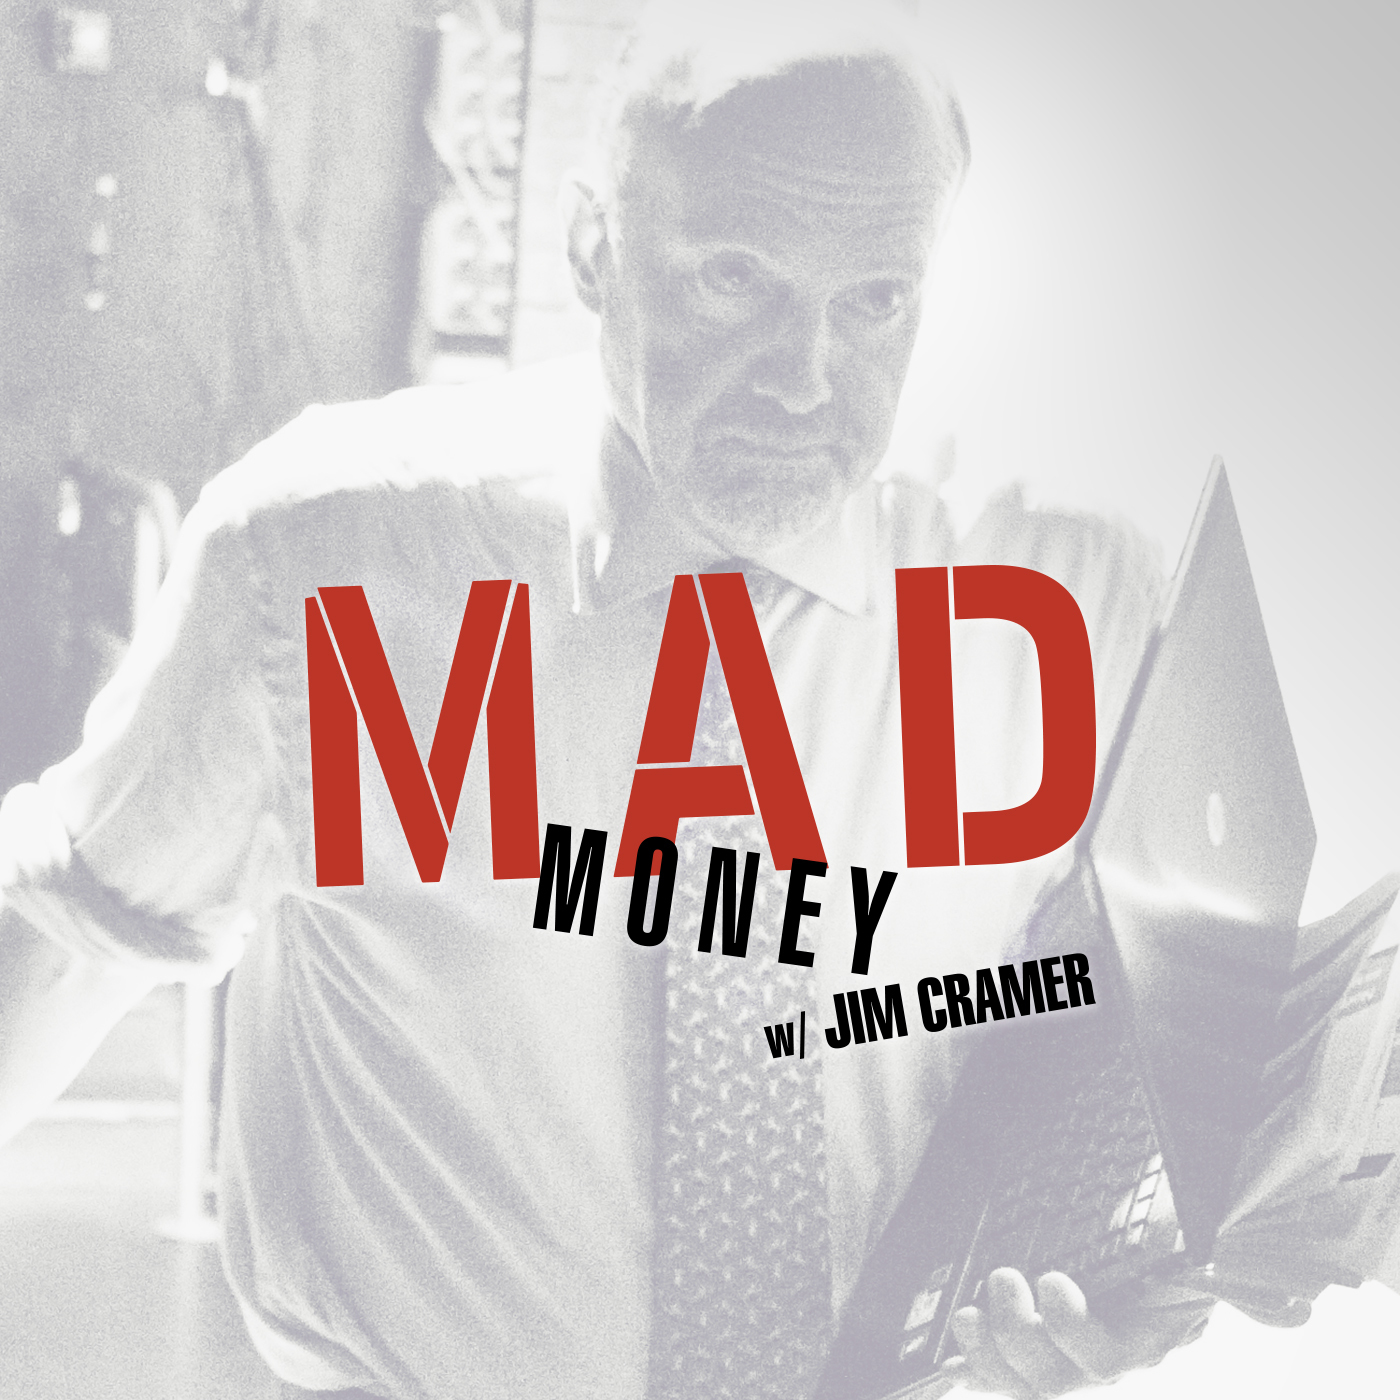 Mad Money w/ Jim Cramer | Listen via Stitcher for Podcasts